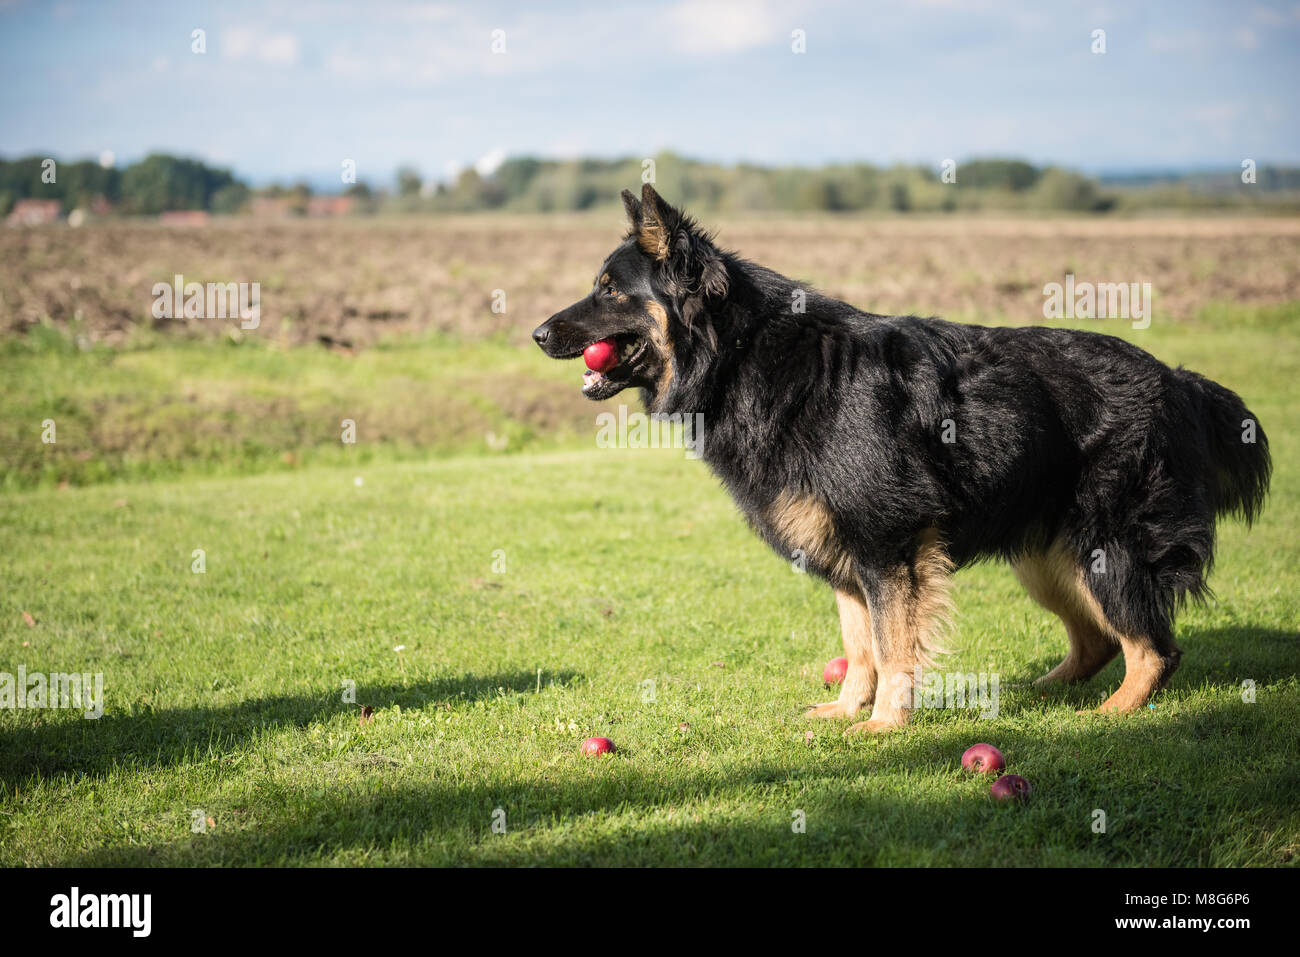 Young Bohemian Shepherd stands while holding an apple in his mouth during a sunny day - Stock Image